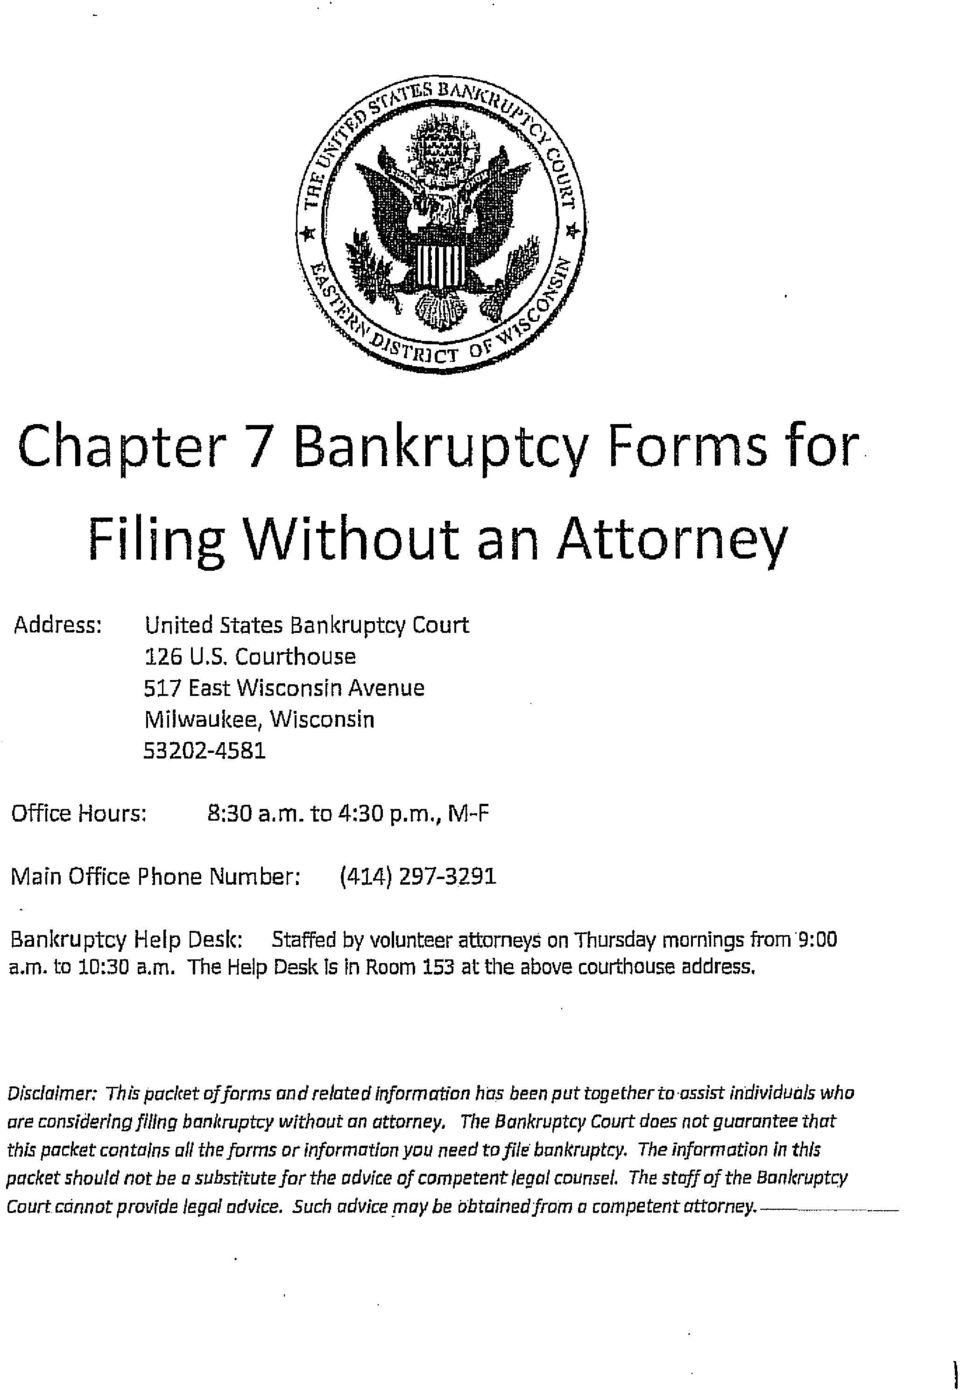 Diclaimer: Thi packet of form and related Information ha been put togetherto oit individual who ore conidering filing ban/1ruptcy without an attorney.